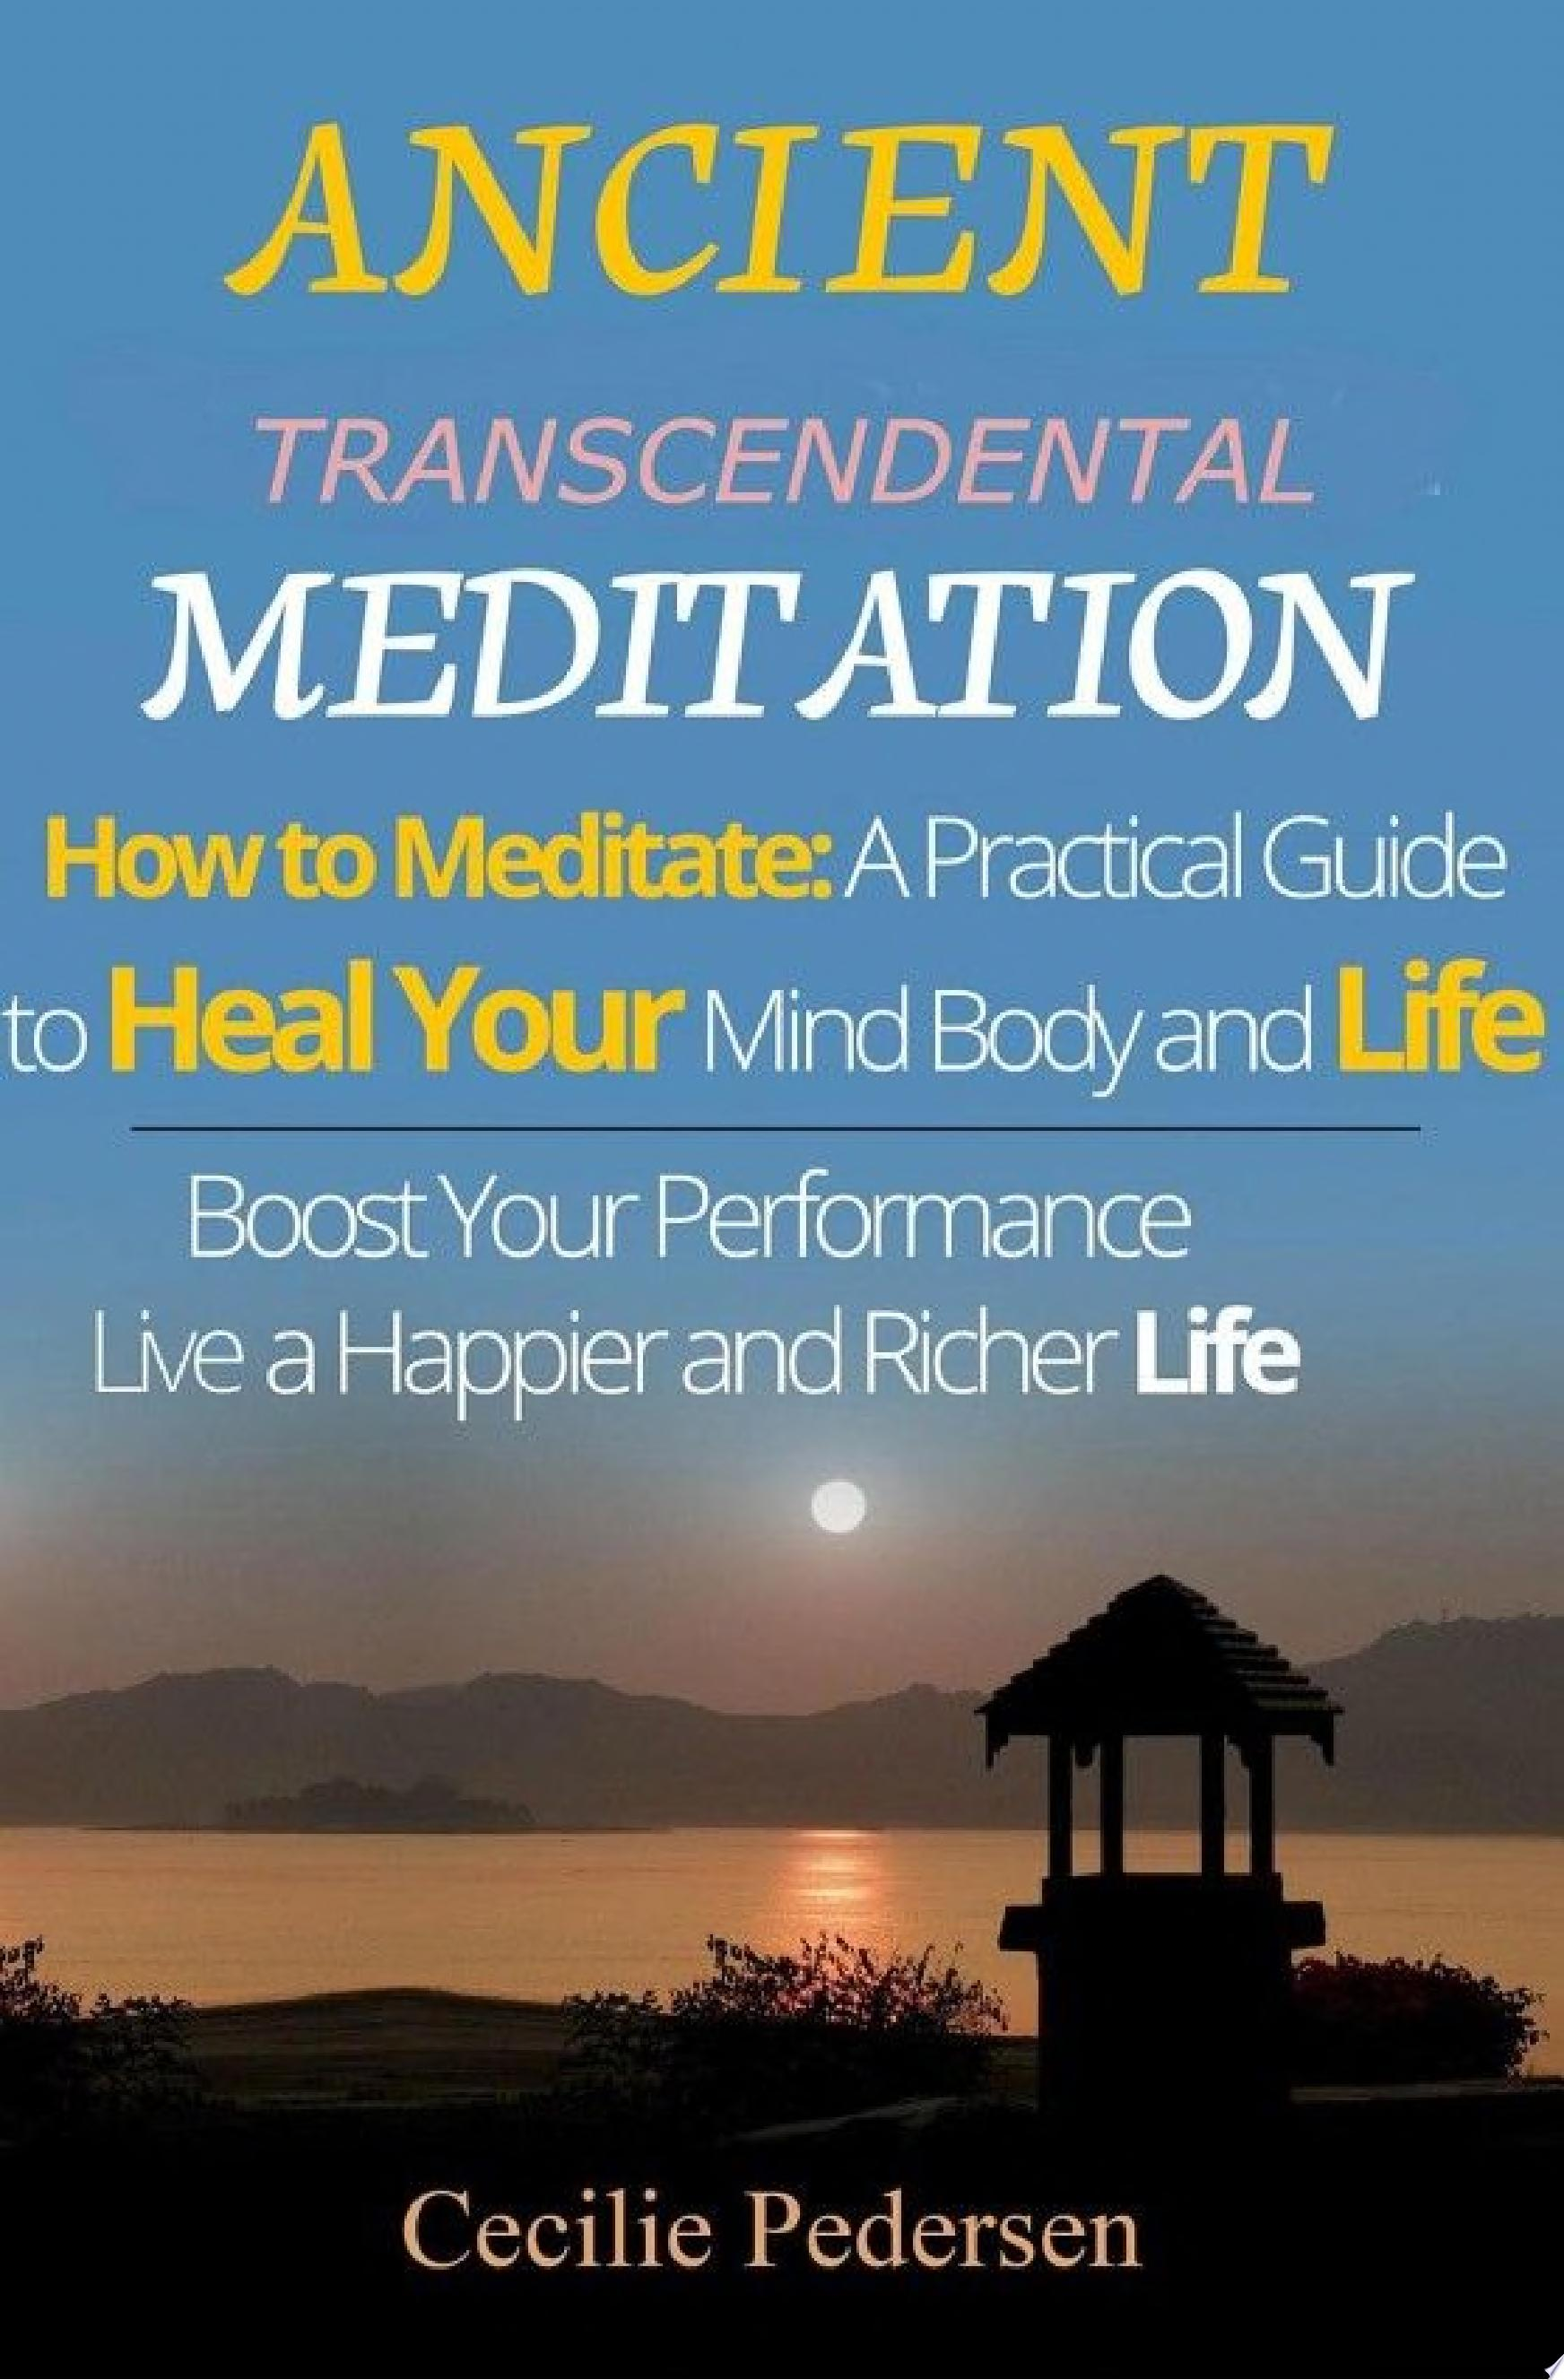 Ancient Transcendental Meditation How to Meditate  A Practical Guide to Heal Your Mind Body and Life